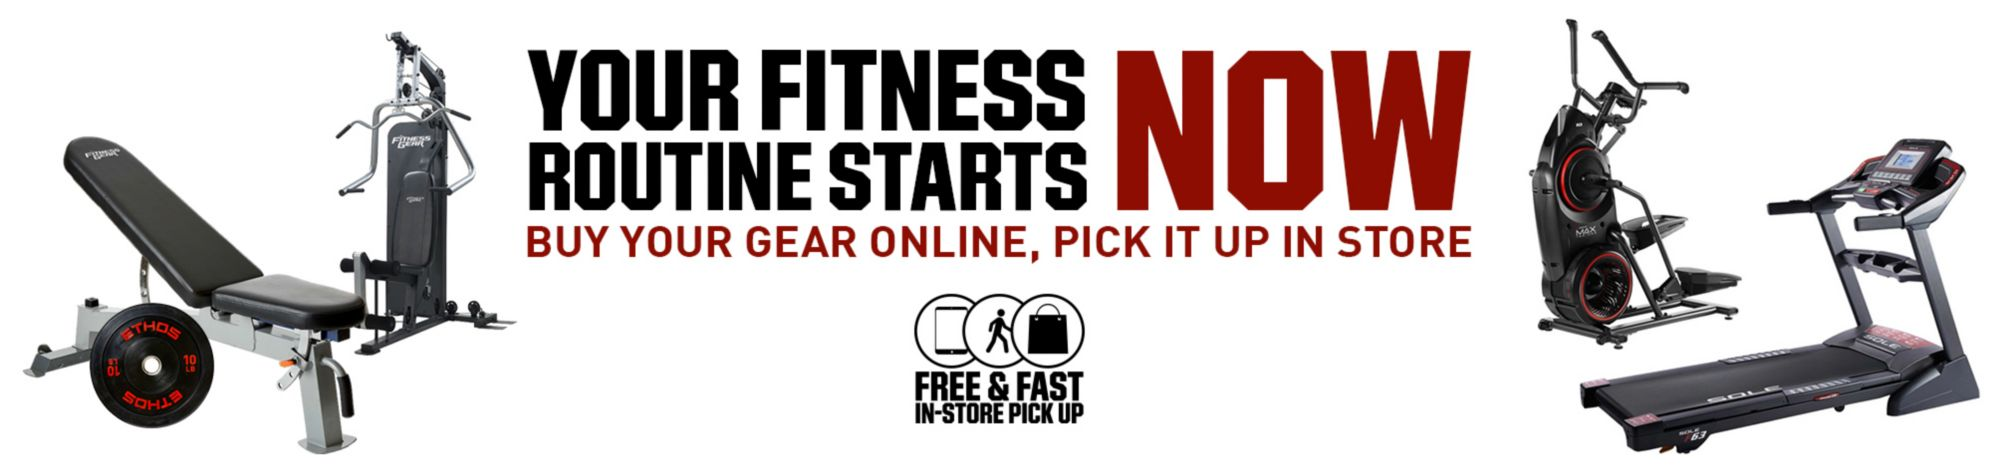 Start Your Fitness Routine Now! Free & Fast In-Store Pick-Up on Top Fitness Items When You Buy Online & Pick Up In Store